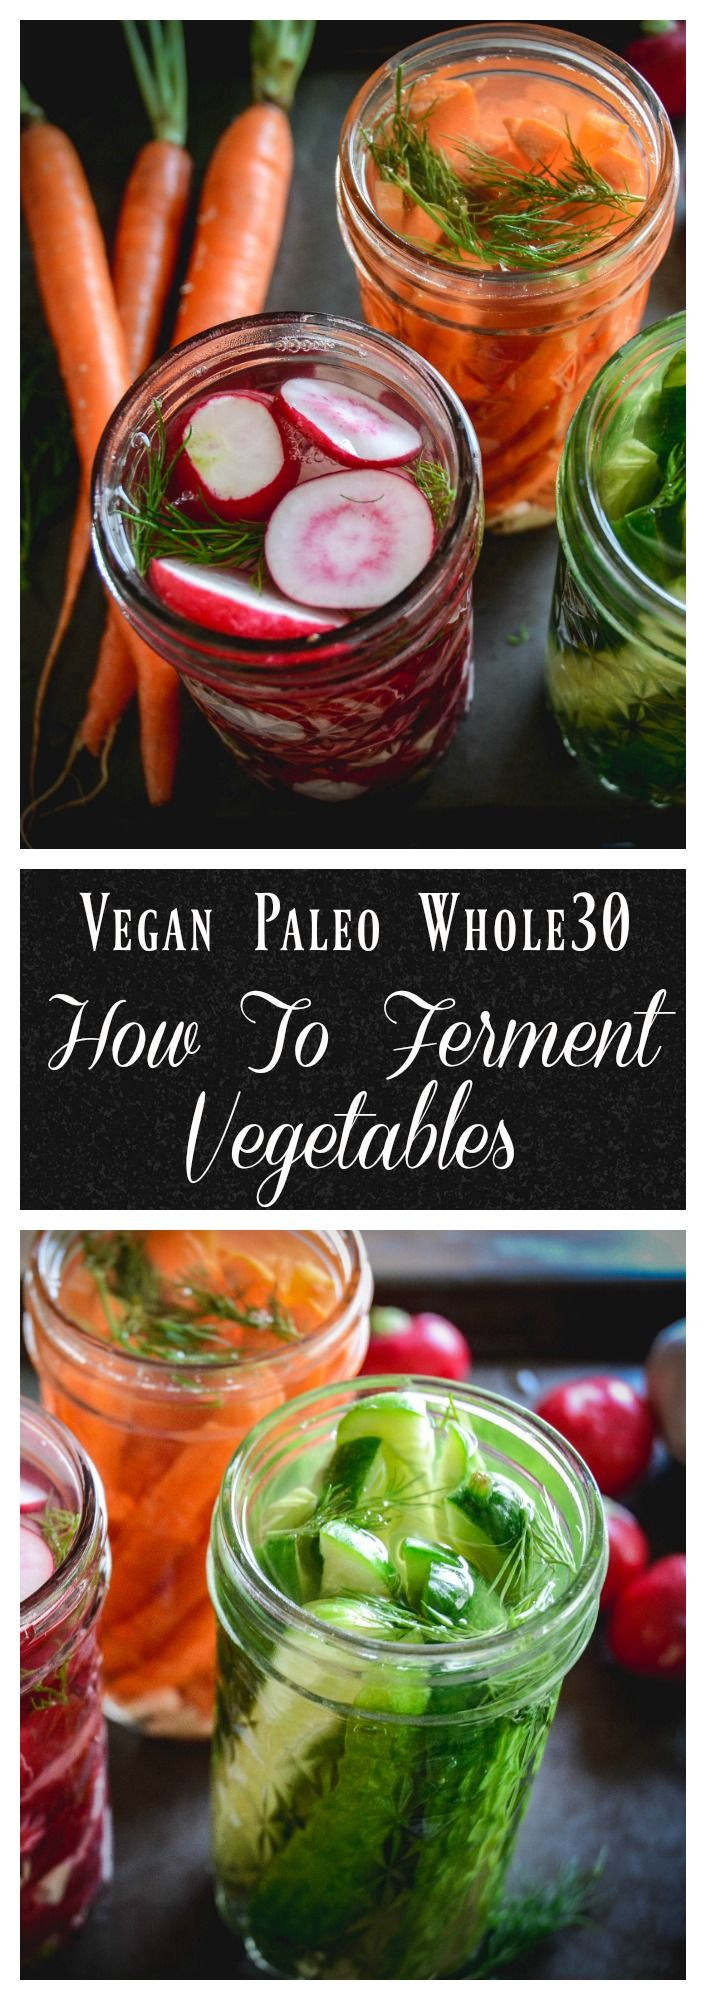 Fermented vegetables are one of the healthiest foods we can eat. They're loaded with natural probiotics and enzymes and take only 15 minutes to prepare. #fermentedvegetables, #fermentedcarrots, #pickles, #whole30, #vegan, #paleo